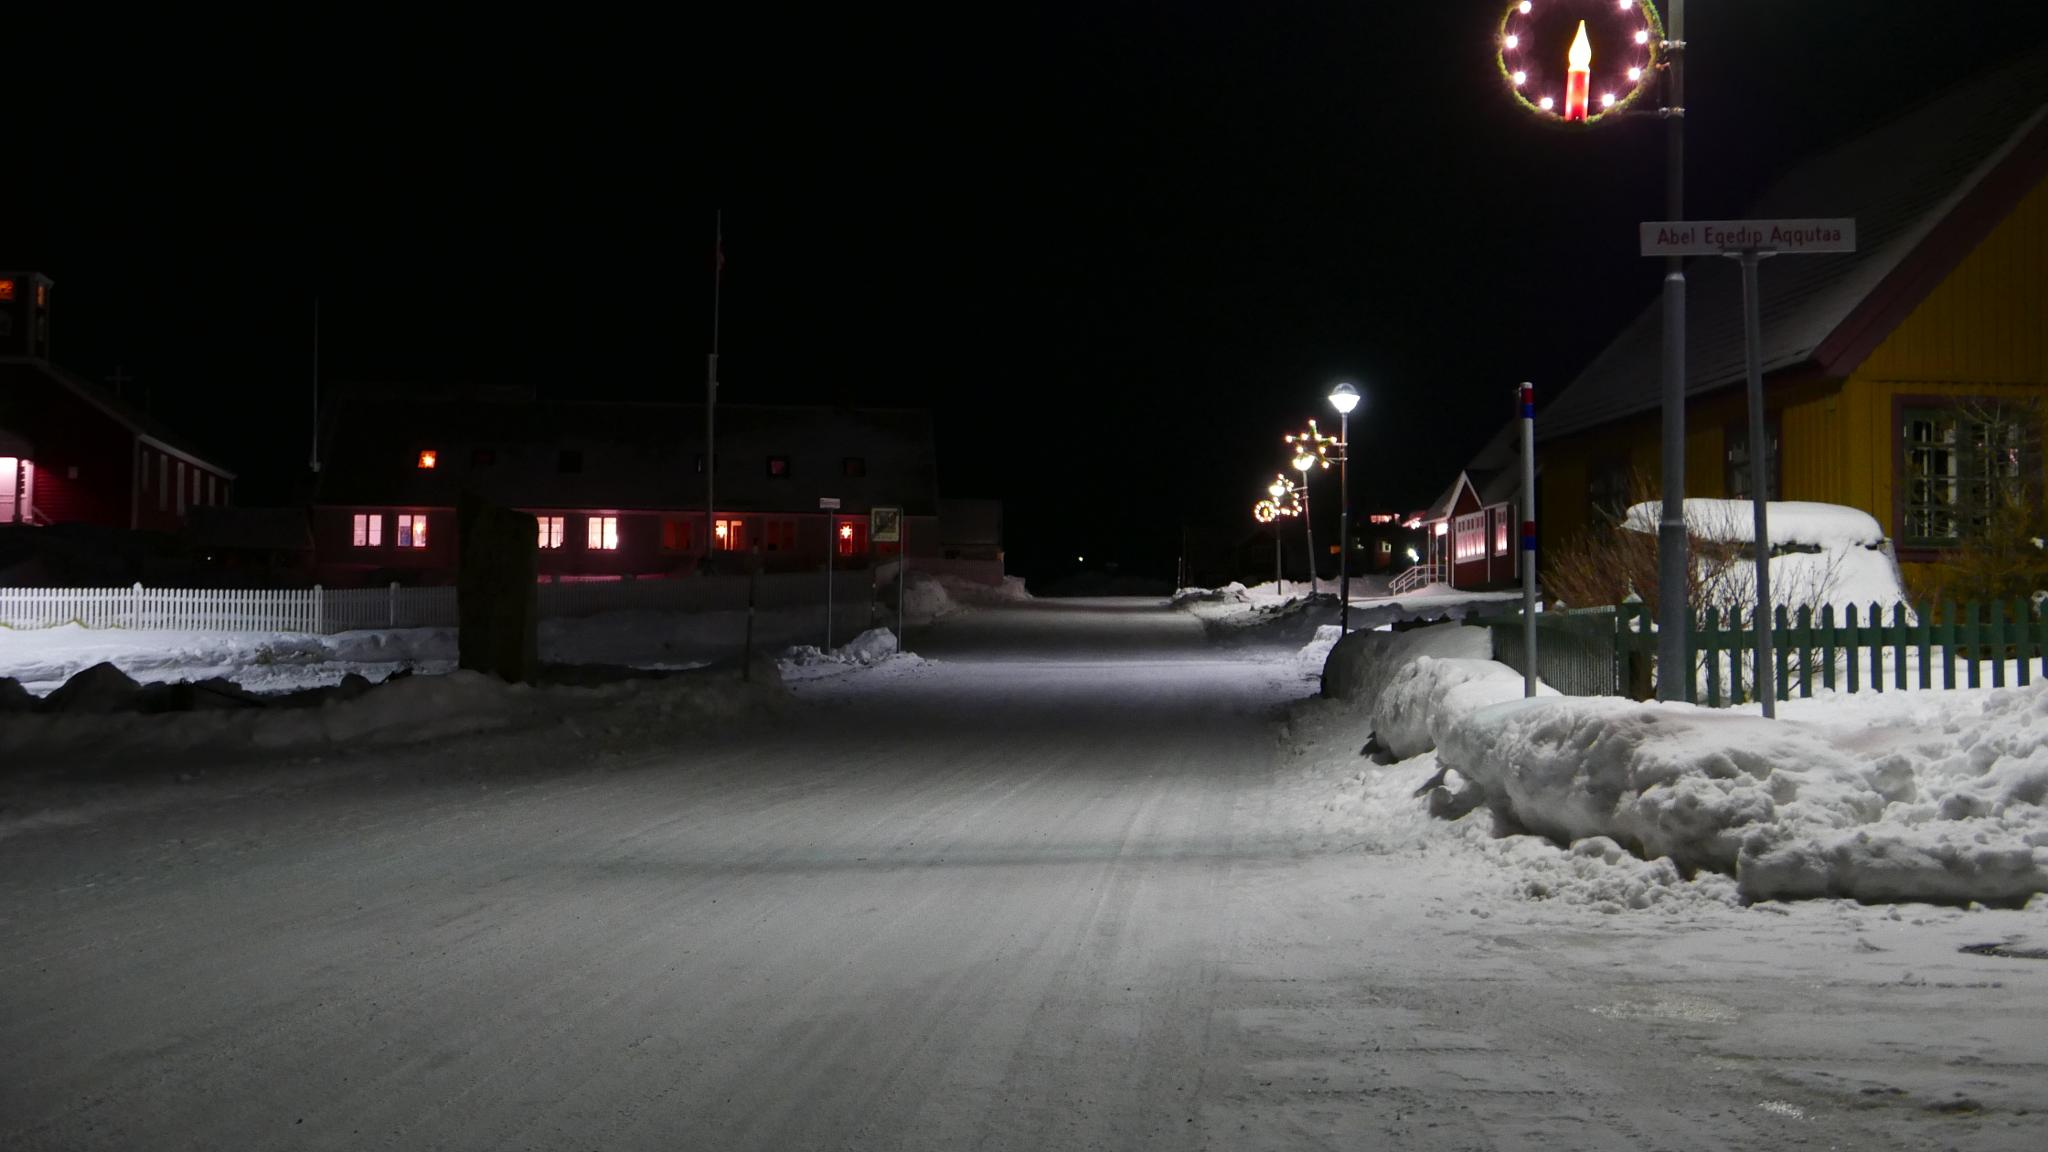 old town crismas decorated  by Tom Augo Lynge